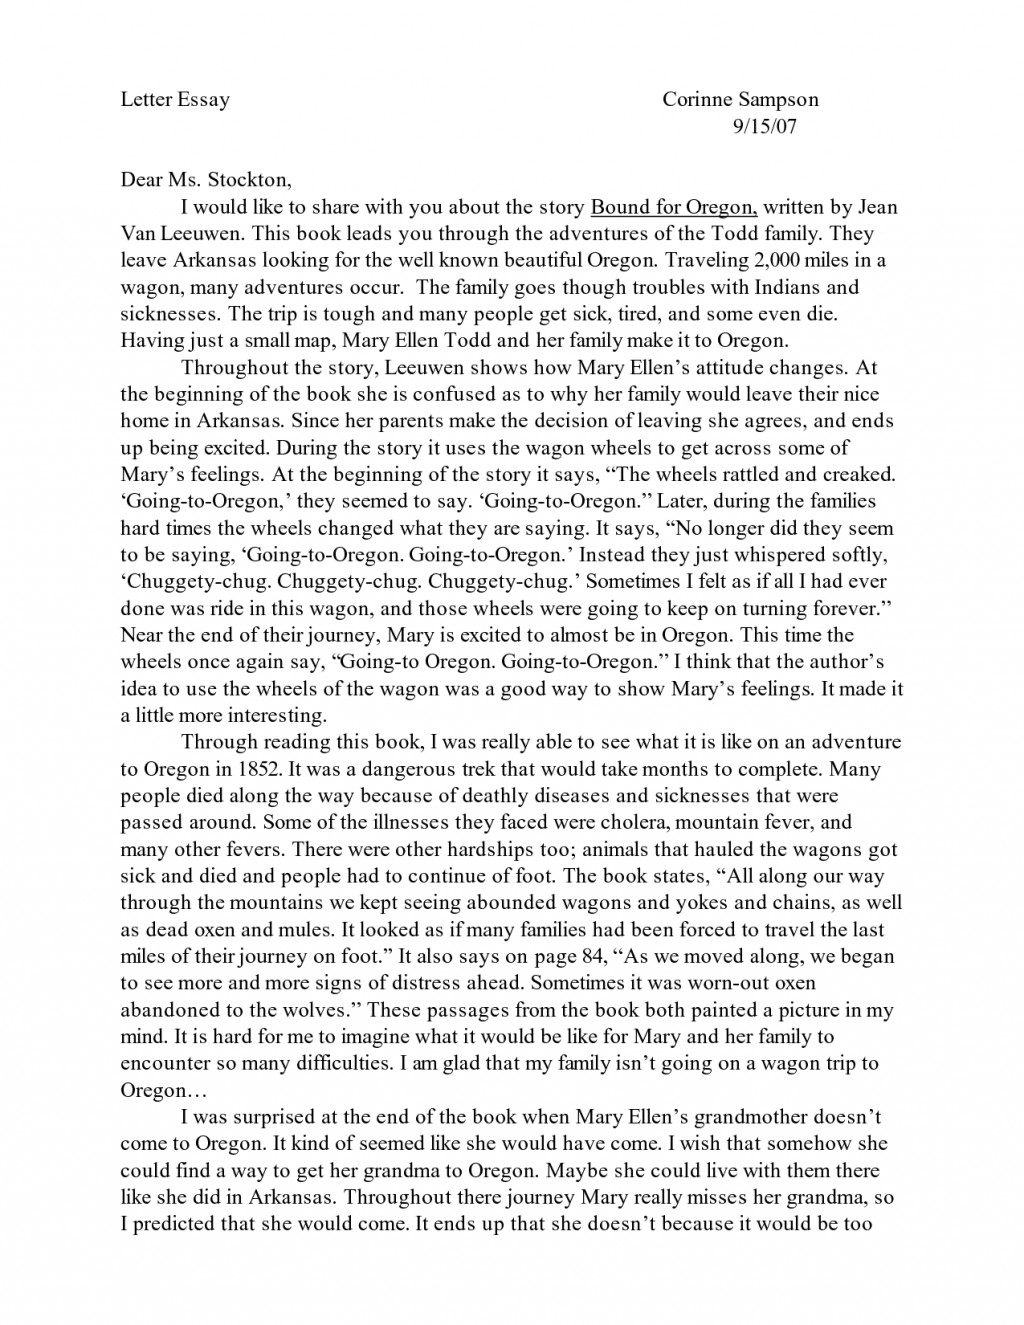 001 Essay Example Scholarship Sample Stunning Samples For College Students Pdf About Why I Deserve The Large